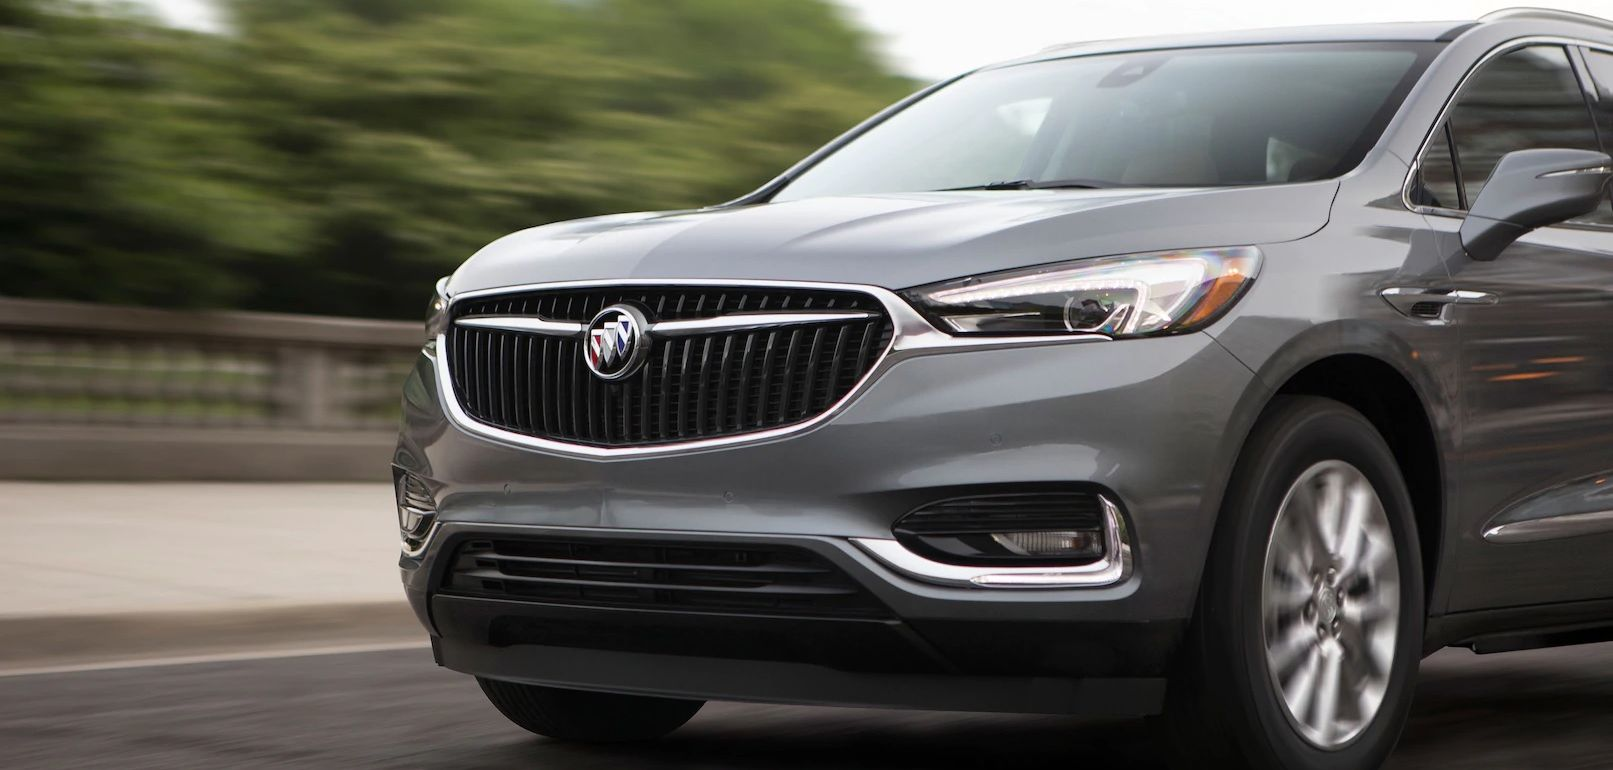 2018 Buick Enclave Leasing near Worthington, MN